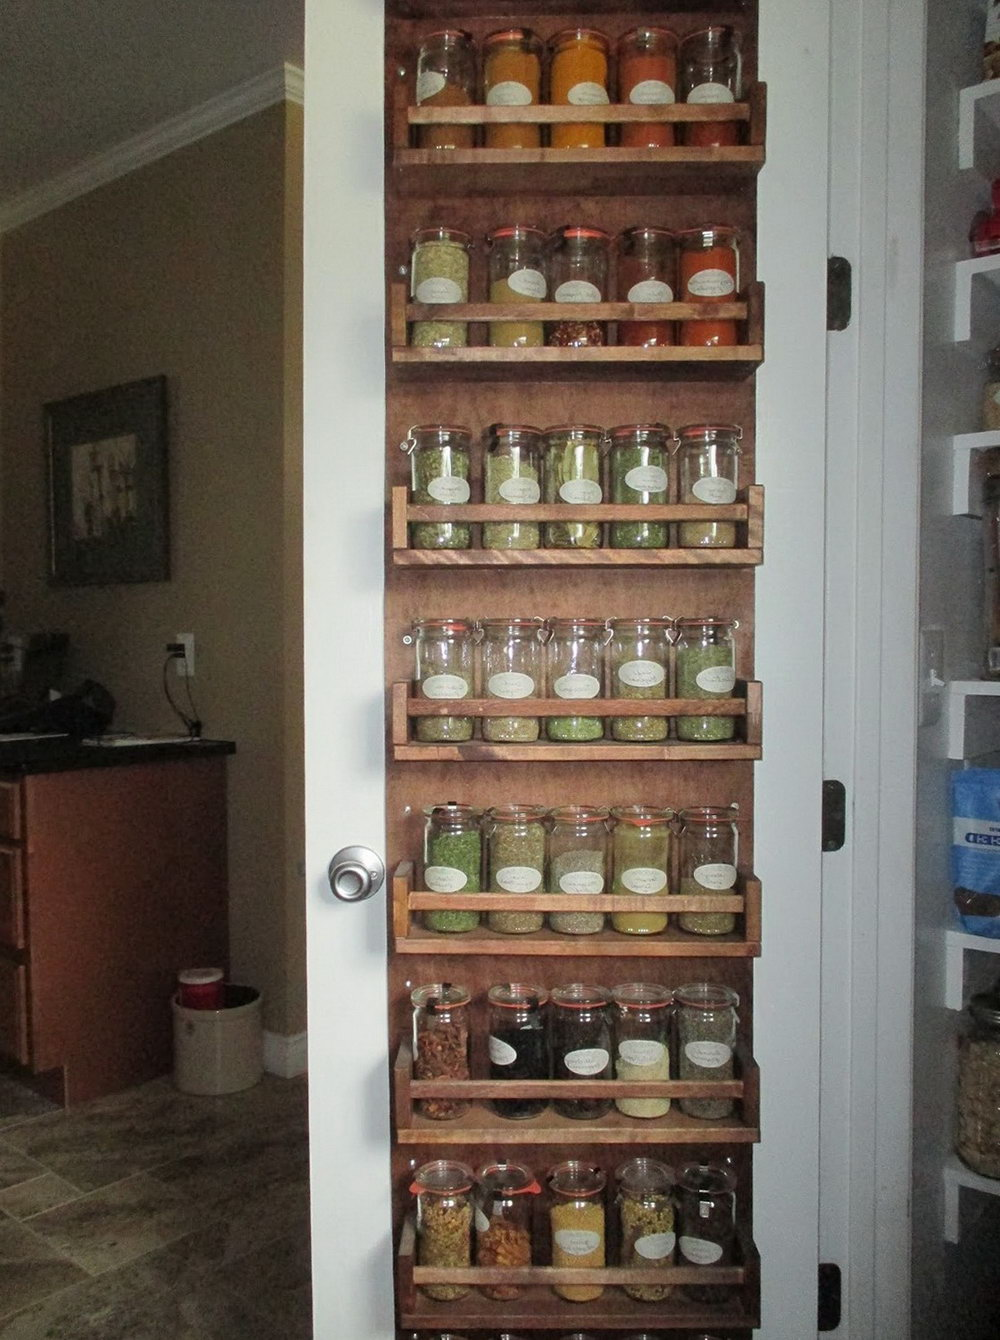 Door Spice Rack Organizer